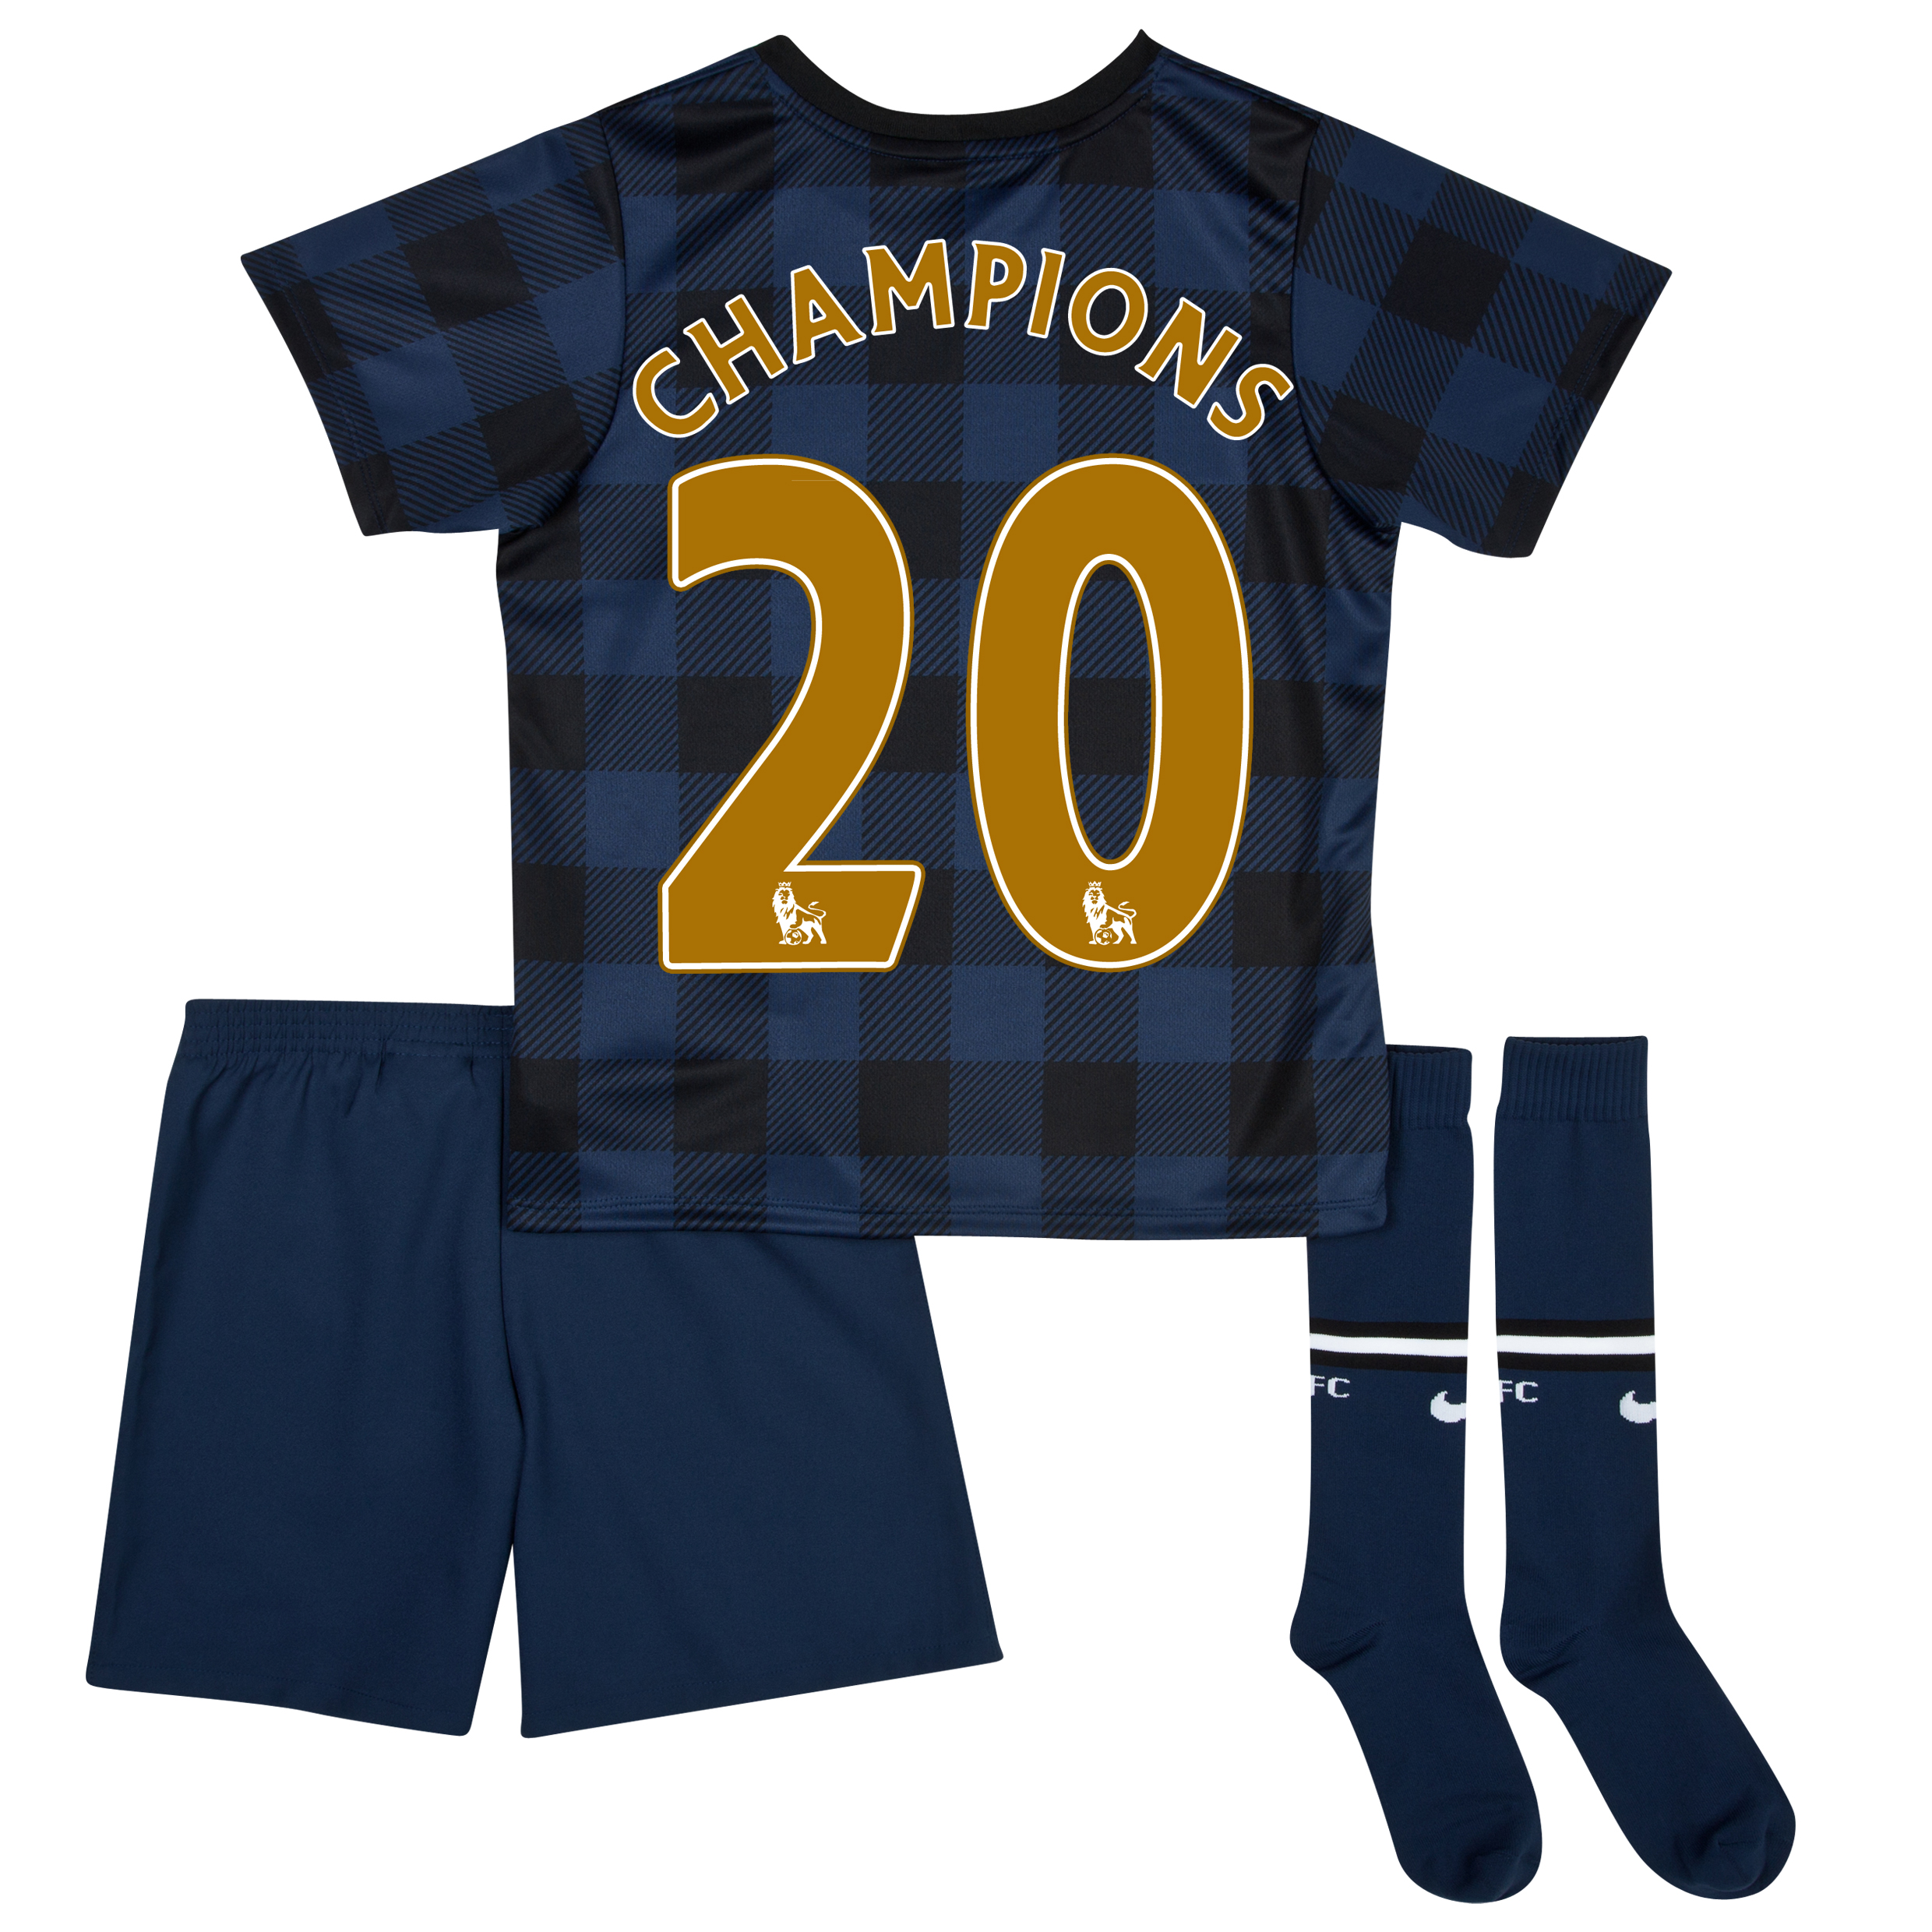 Manchester United Away Kit 2013/14 - Little Boys with Champions 20 printing